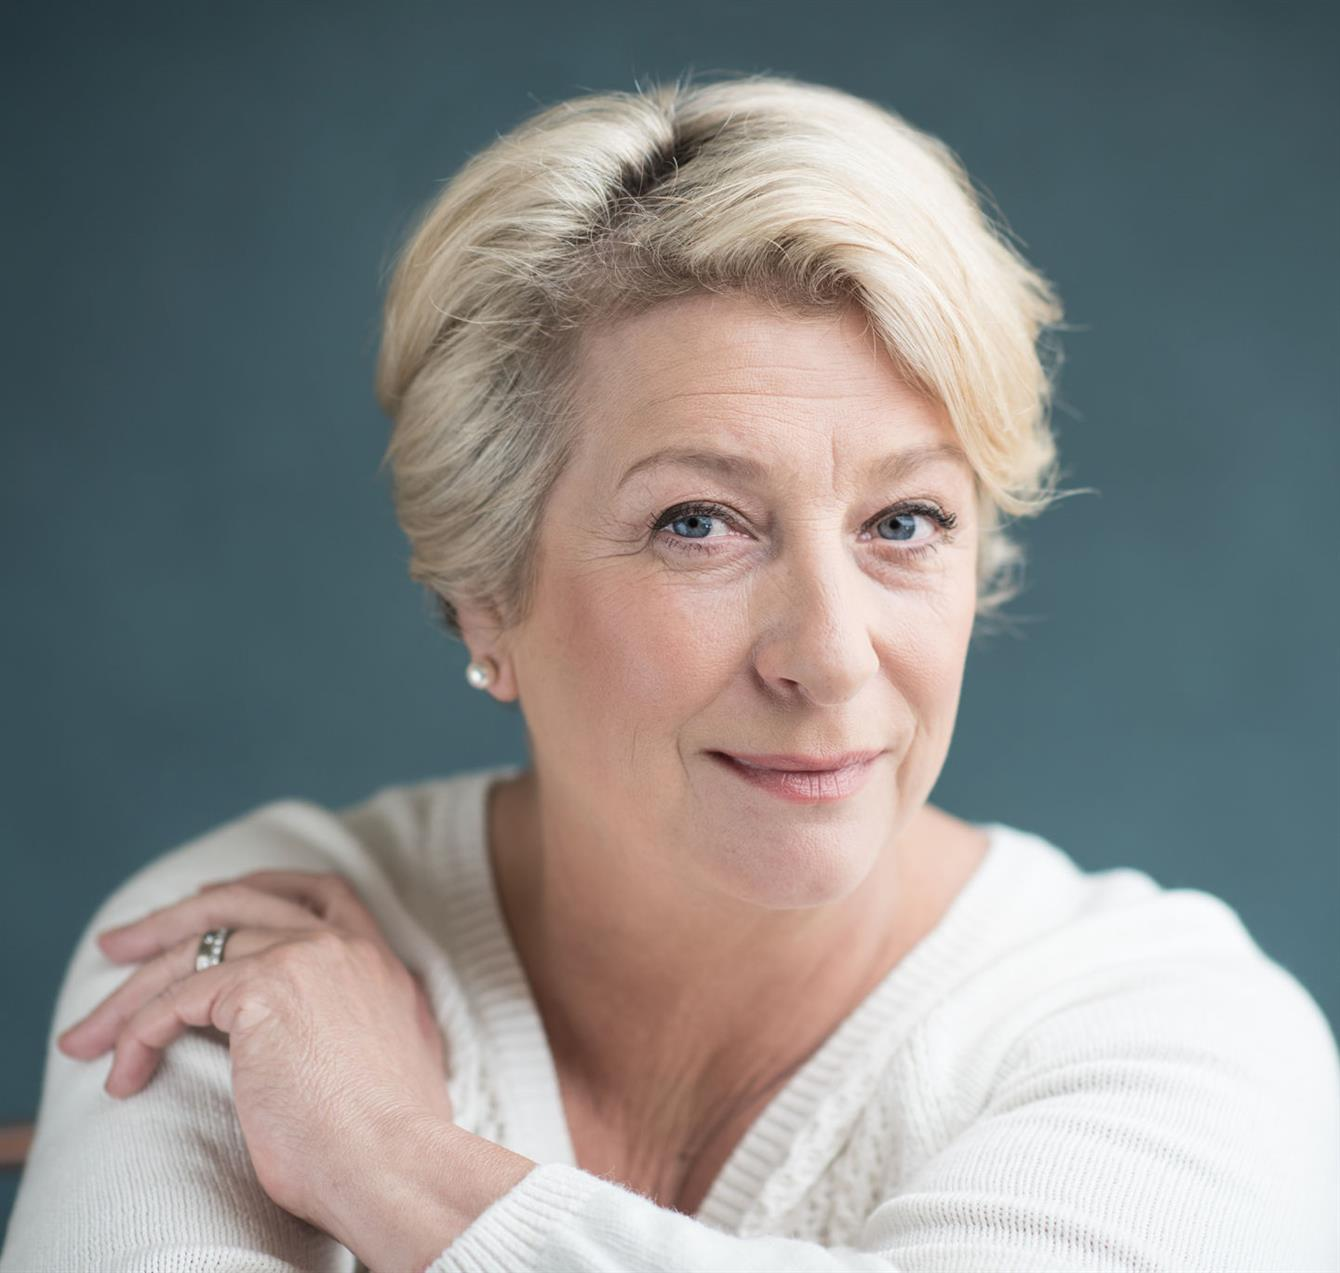 Discussion on this topic: Karla Jensen, caroline-quentin/